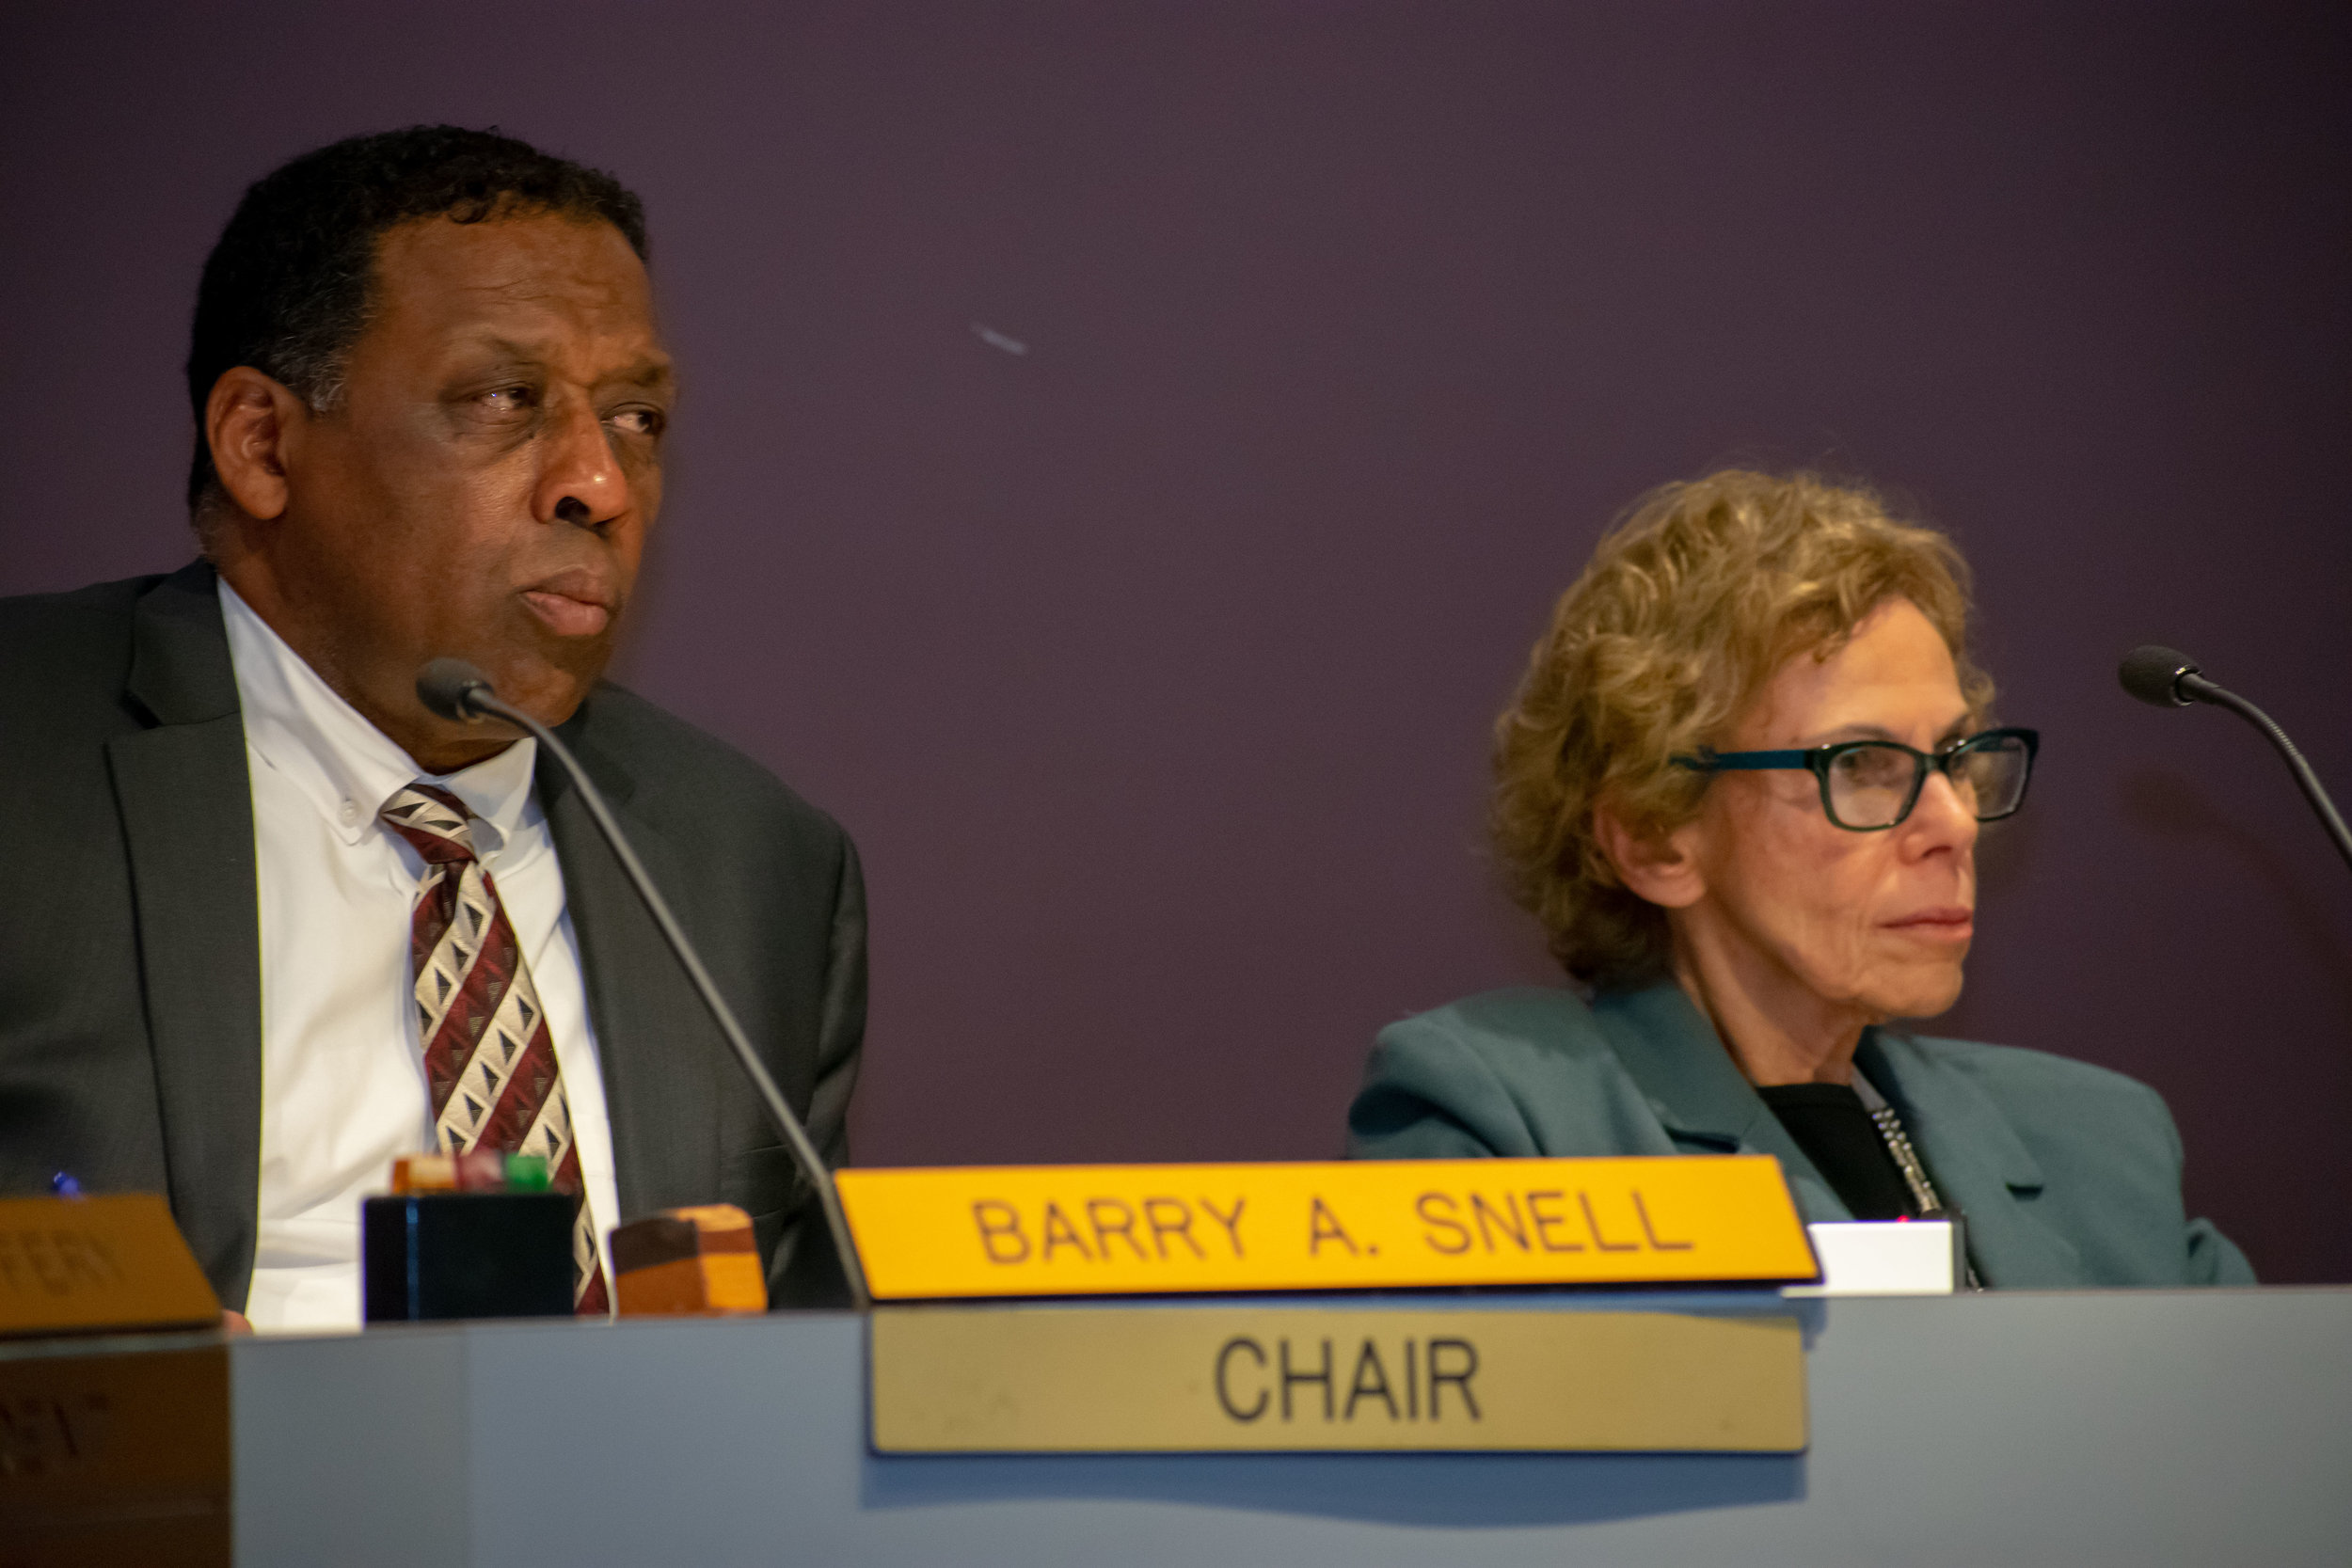 Chair Barry Snell sits on the Santa Monica College board of trustees during their meeting on Tuesday, April 3 alongside trustee Dr. Nancy Greenstein in Santa Monica, California. Both will be running again in the 2018 November elections, Snell has been on the board since 2014 and Greenstein since 2002. (Ethan Lauren/Corsair Photo)